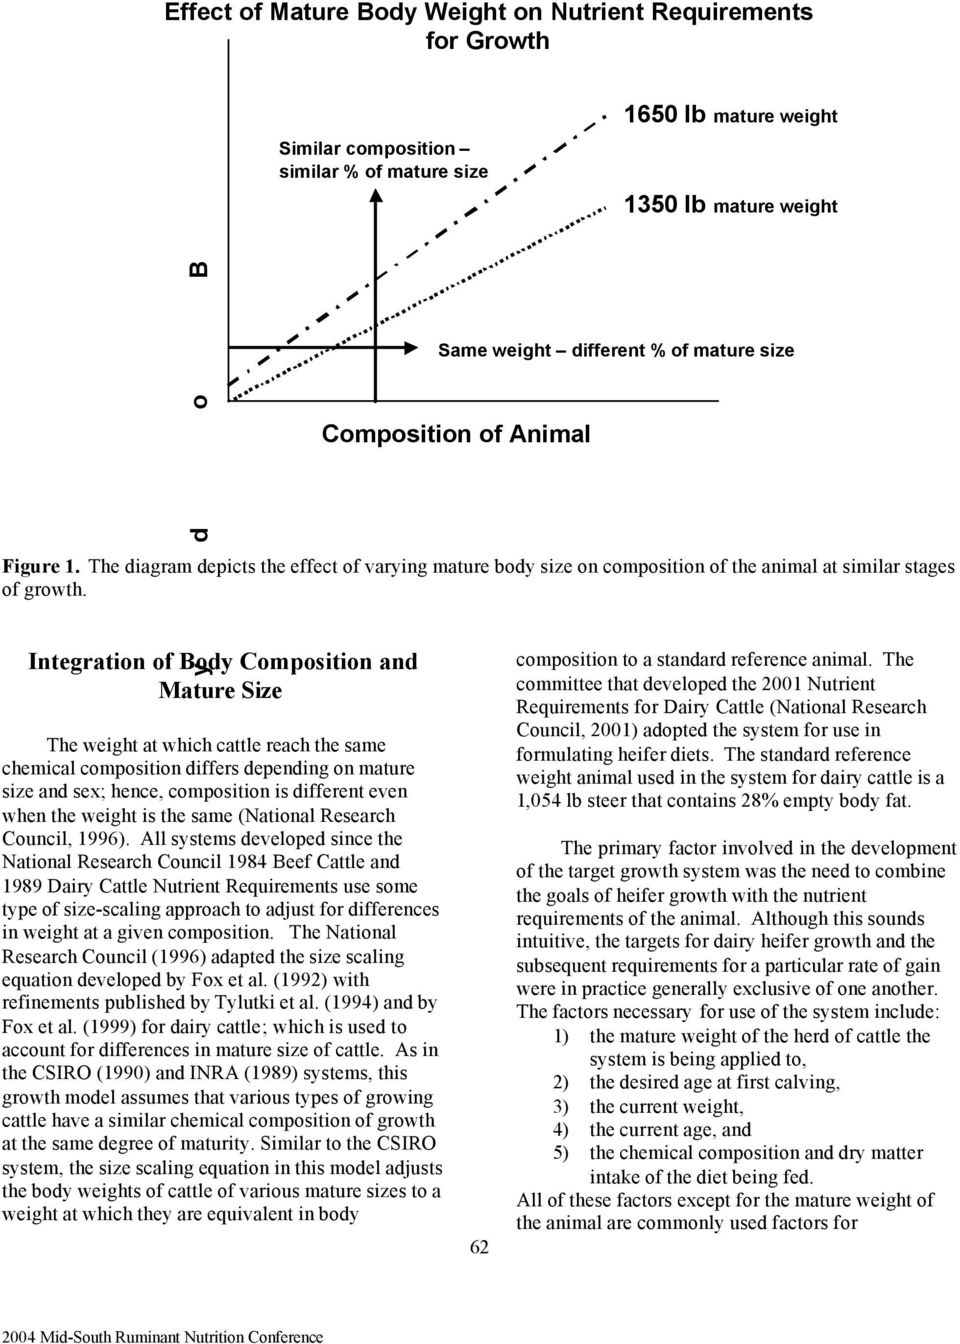 Integration of Body Composition and Mature Size The weight at which cattle reach the same chemical composition differs depending on mature size and sex; hence, composition is different even when the